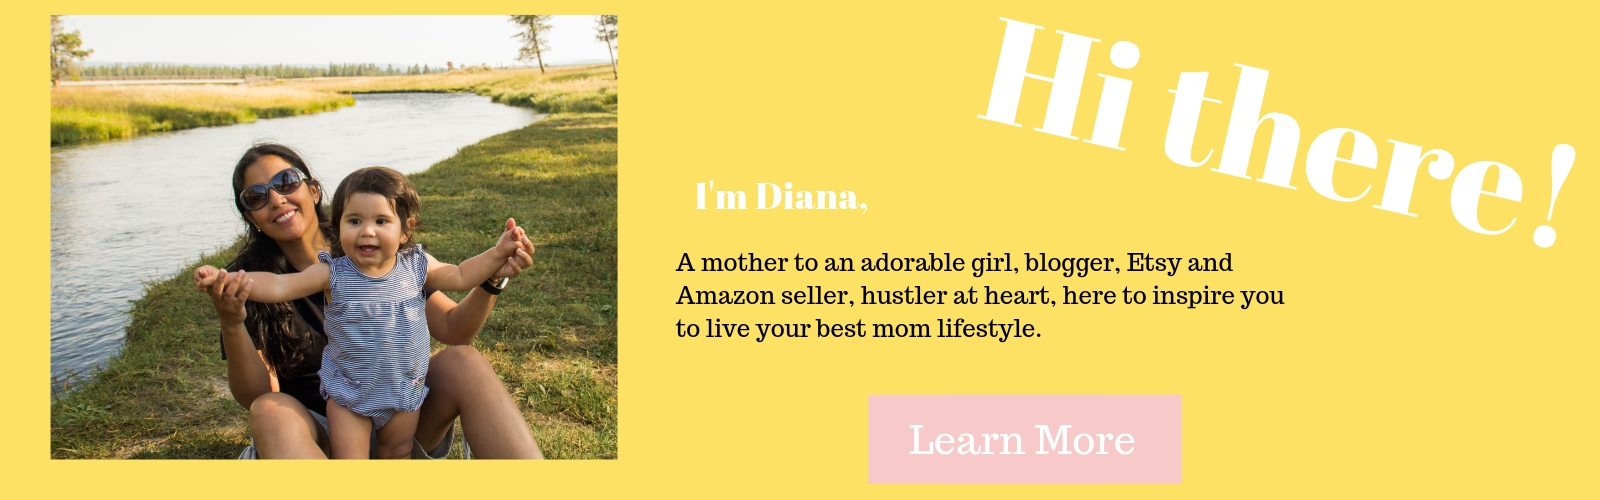 Forever Bebes | About | Meet Diana, the mom behind this website and lifestyle blog